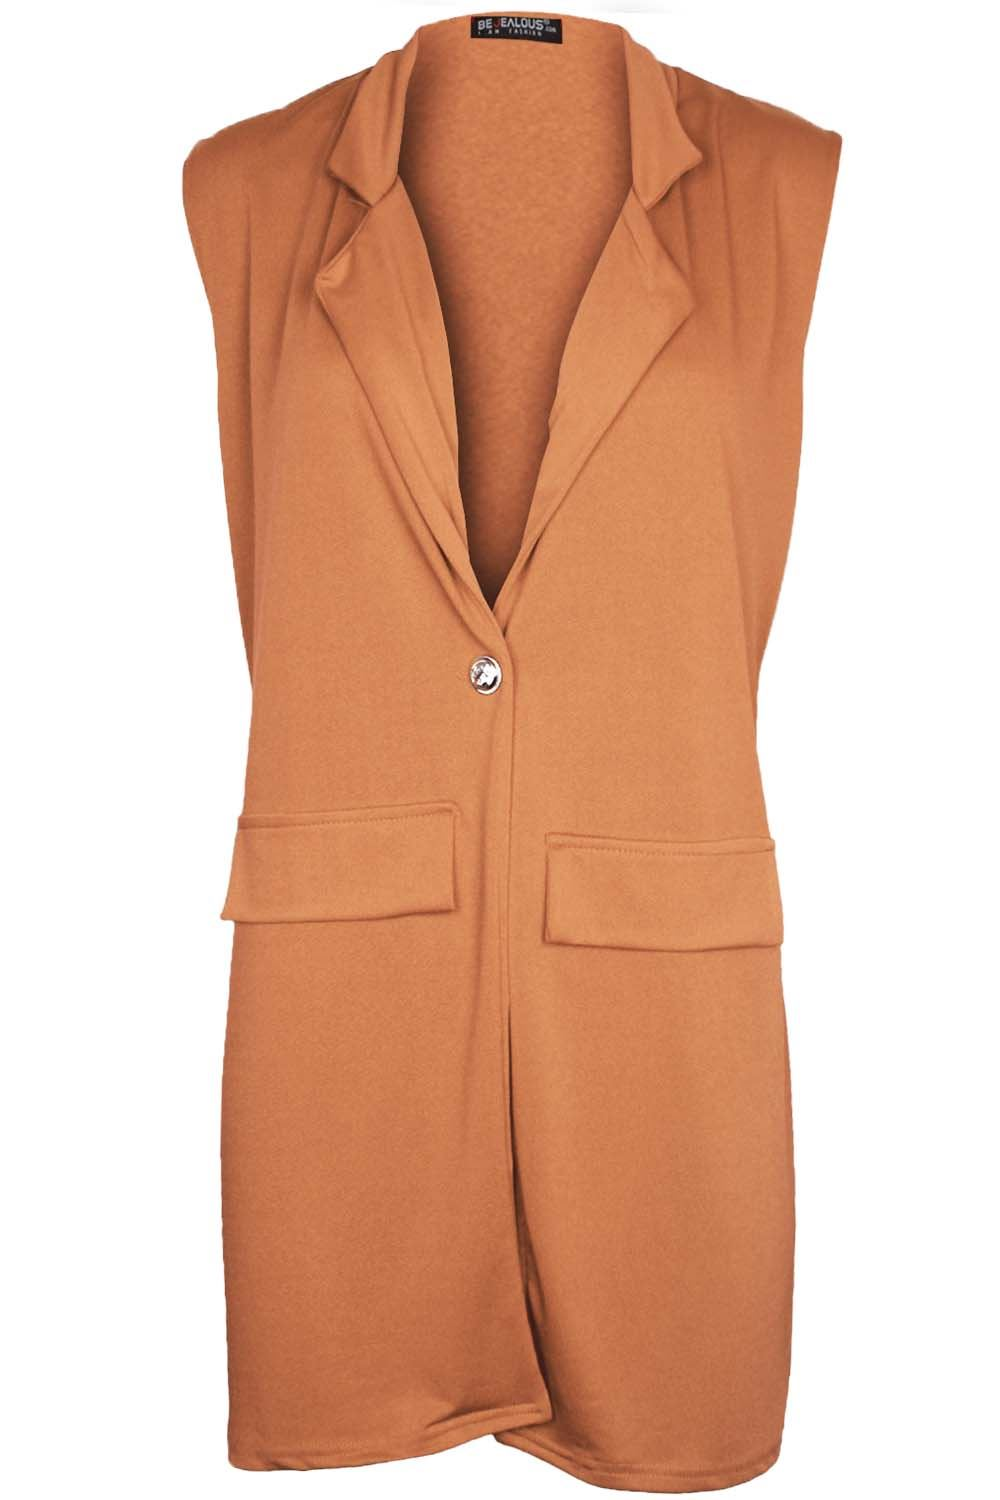 Women-Ladies-Sleeveless-Long-Duster-Coat-Collar-Waistcoat-Smart-Blazer-Plus-Size thumbnail 19